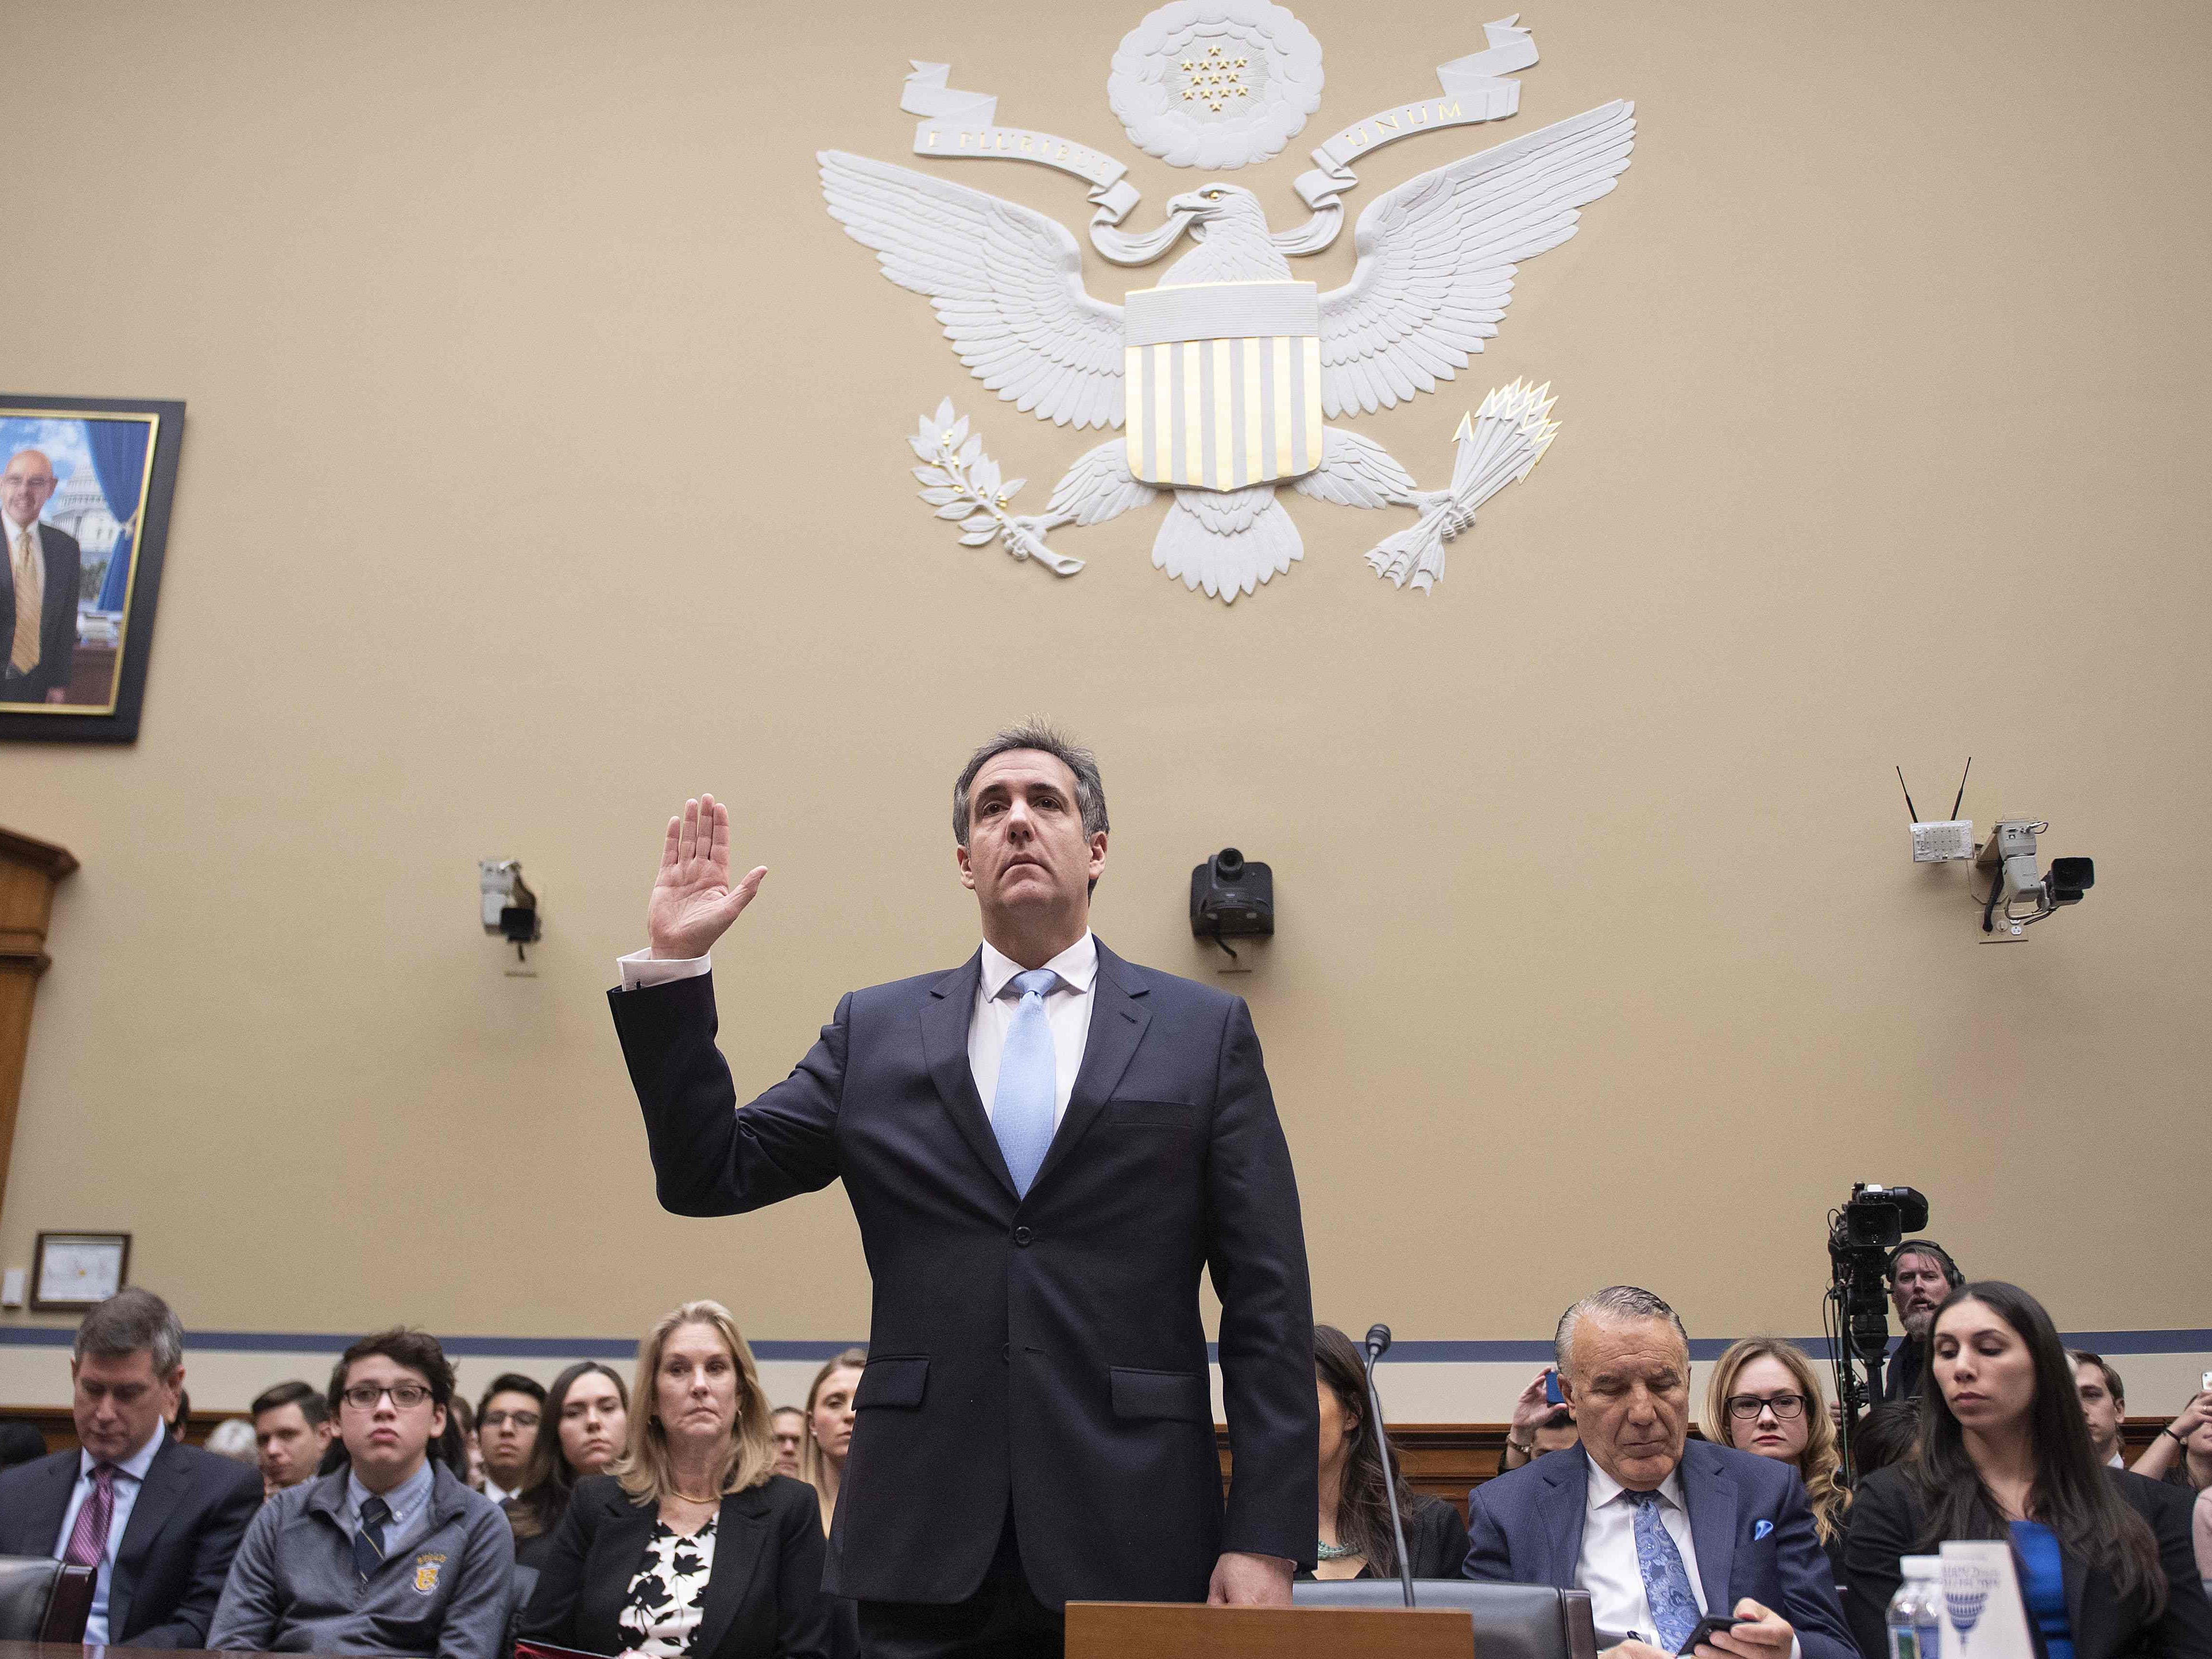 Michael Cohen, US President Donald Trump's former personal attorney, is sworn in to testify before the House Oversight and Reform Committee in the Rayburn House Office Building on Capitol Hill in Washington, DC on Feb. 27, 2019.